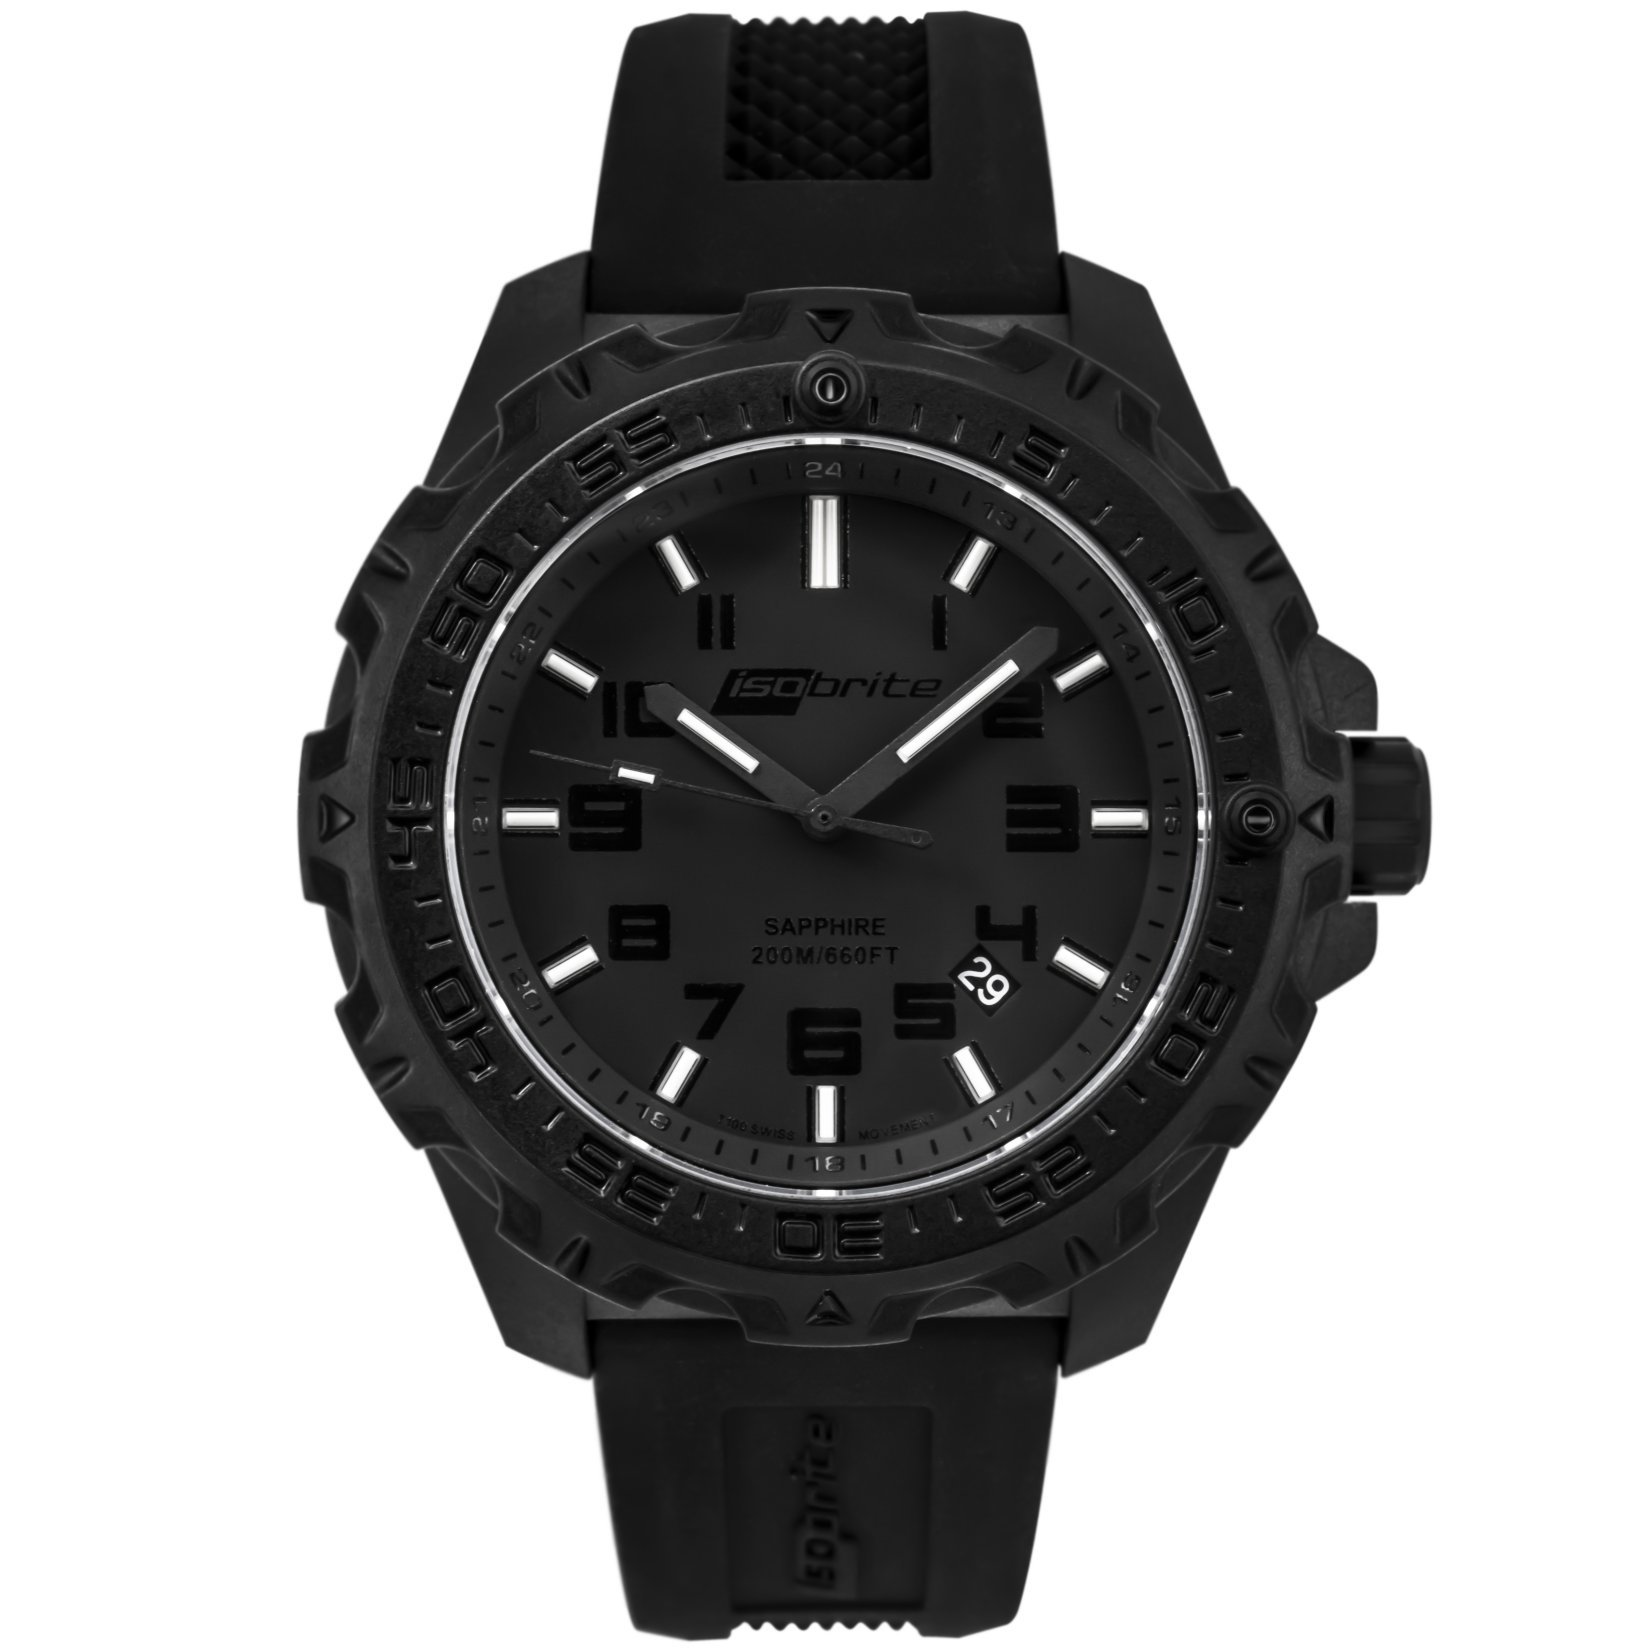 ArmourLite IsoBrite Eclipse T100 Tritium Illuminated Lightweight Polycarbon Watch 1 small All New Isobrite Eclipse T100 Tritium Illuminated Lightweight Polycarbon Tactical Watch Expands ArmourLites Commitment to Making the Brightest and Most Durable Watches